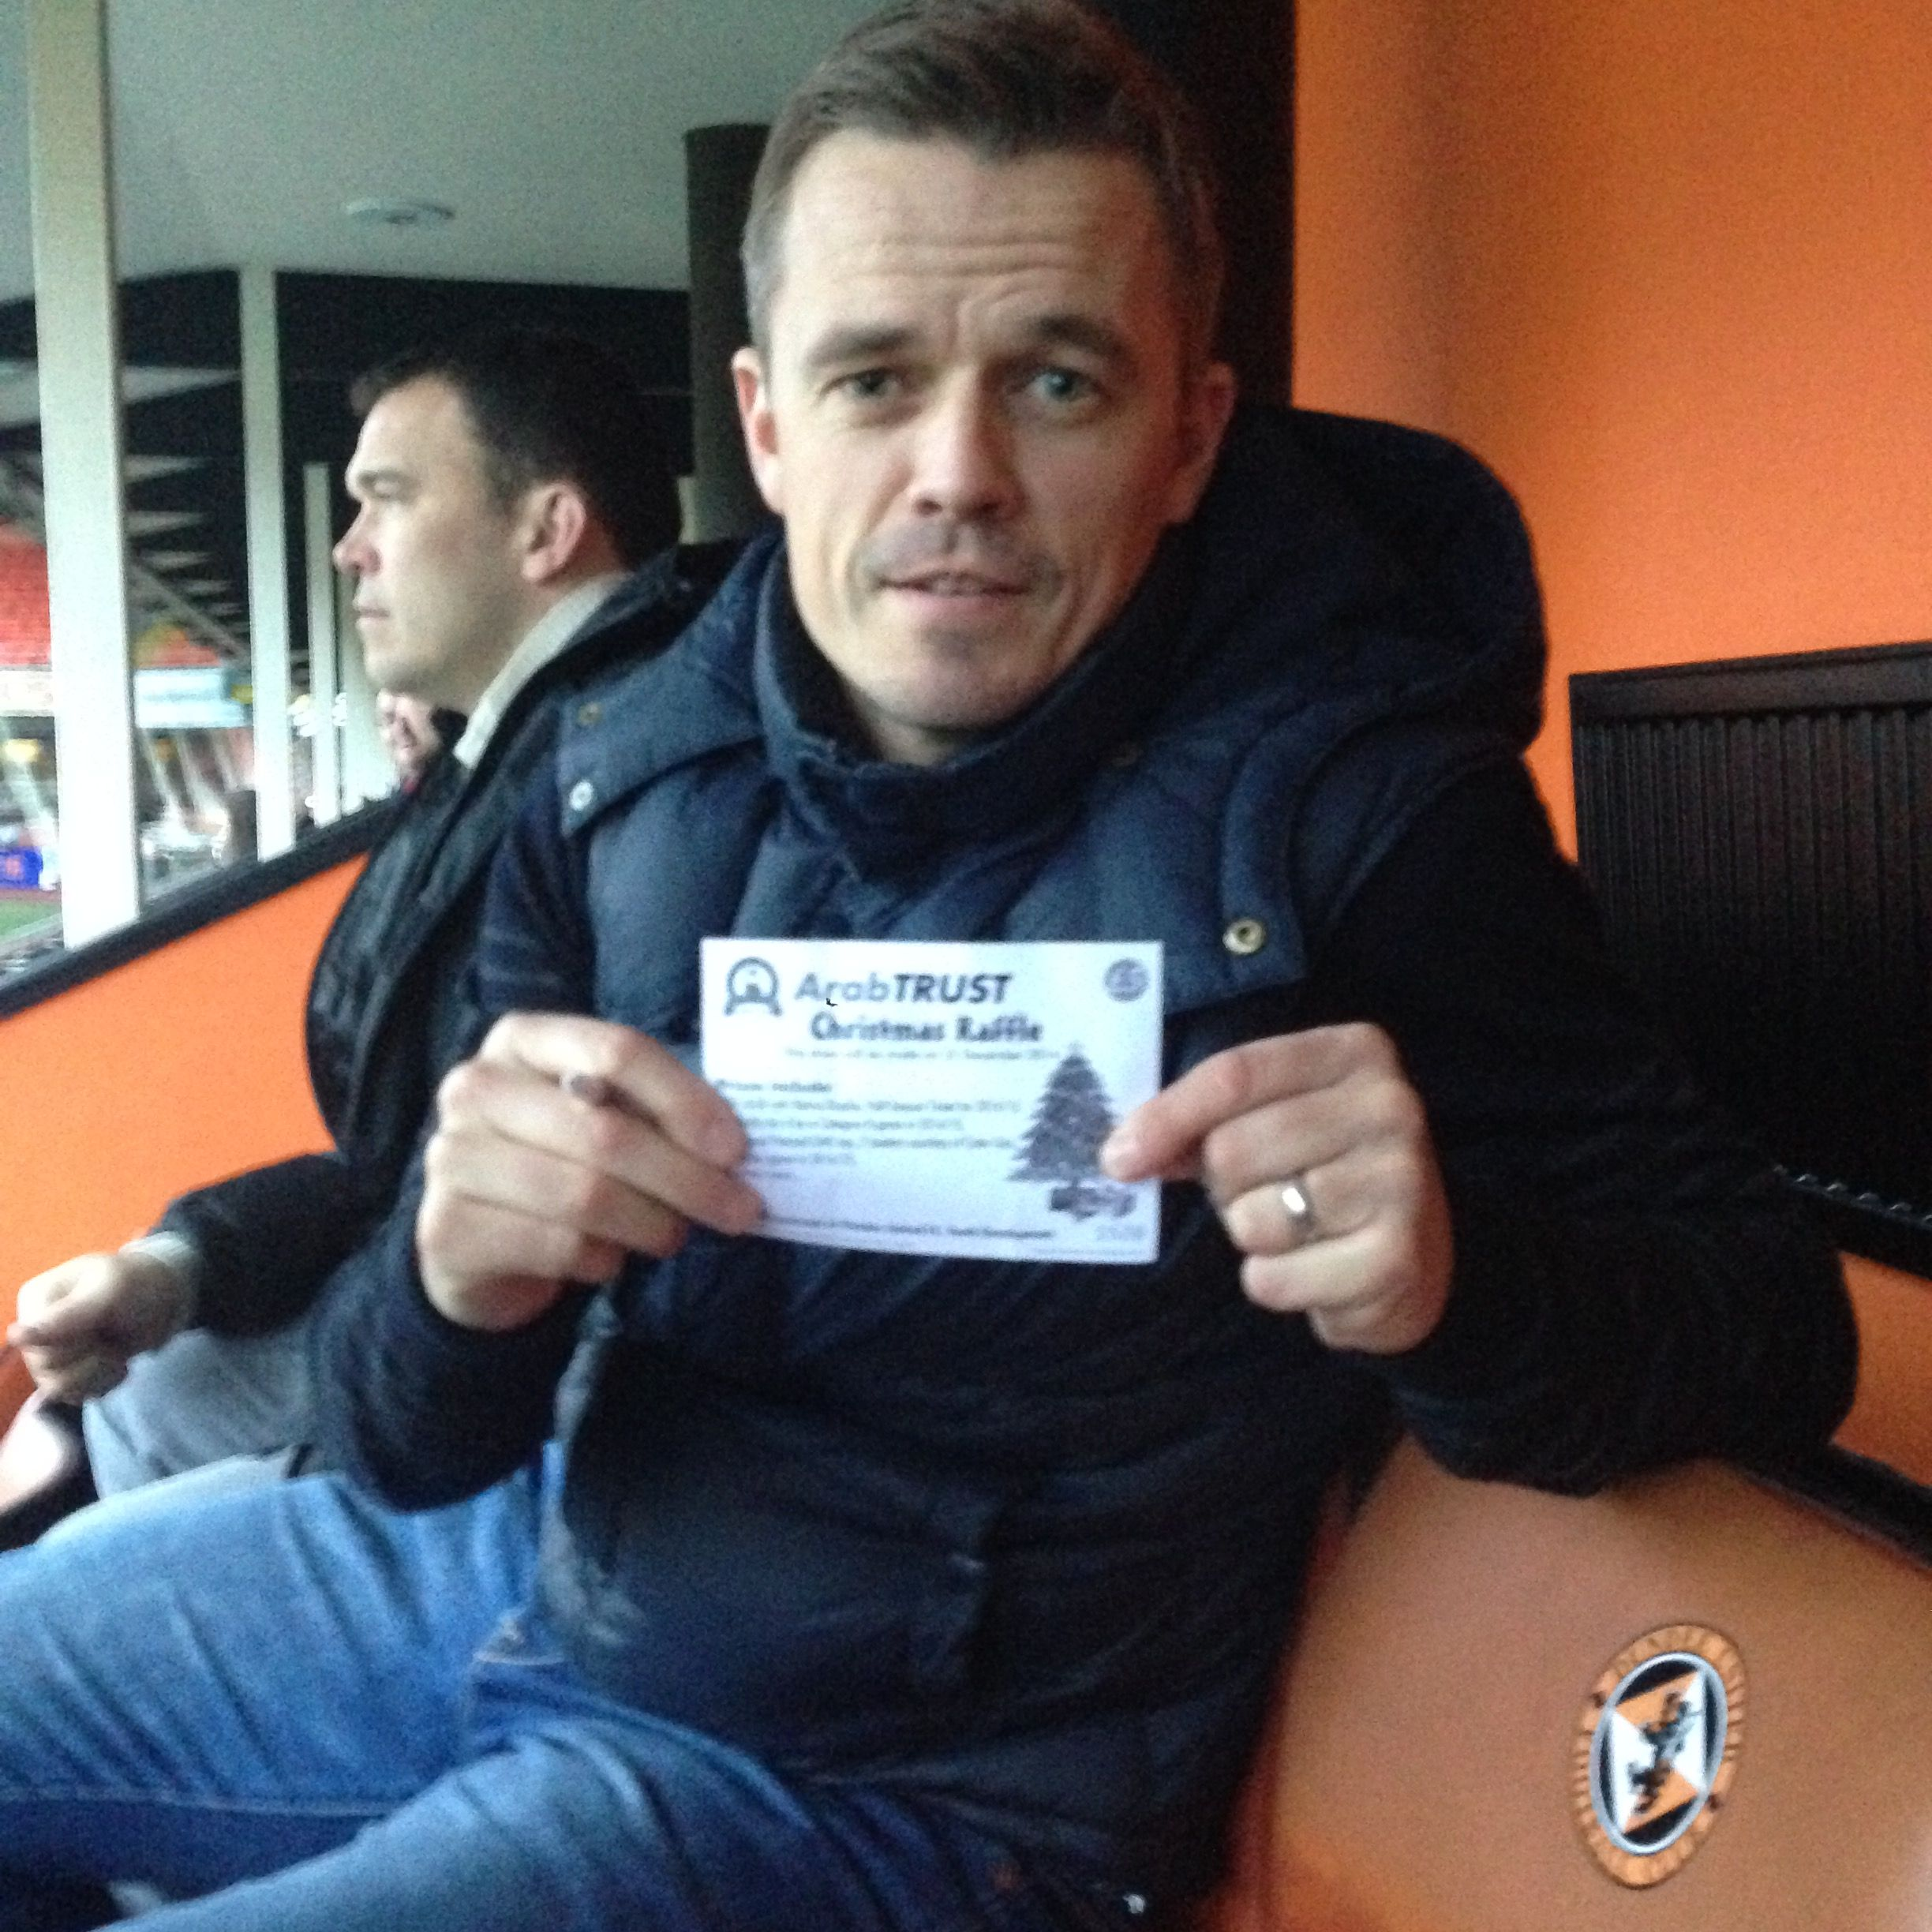 Dundee United Assistant Manager Simon Donnelly with his Christmas Raffle ticket